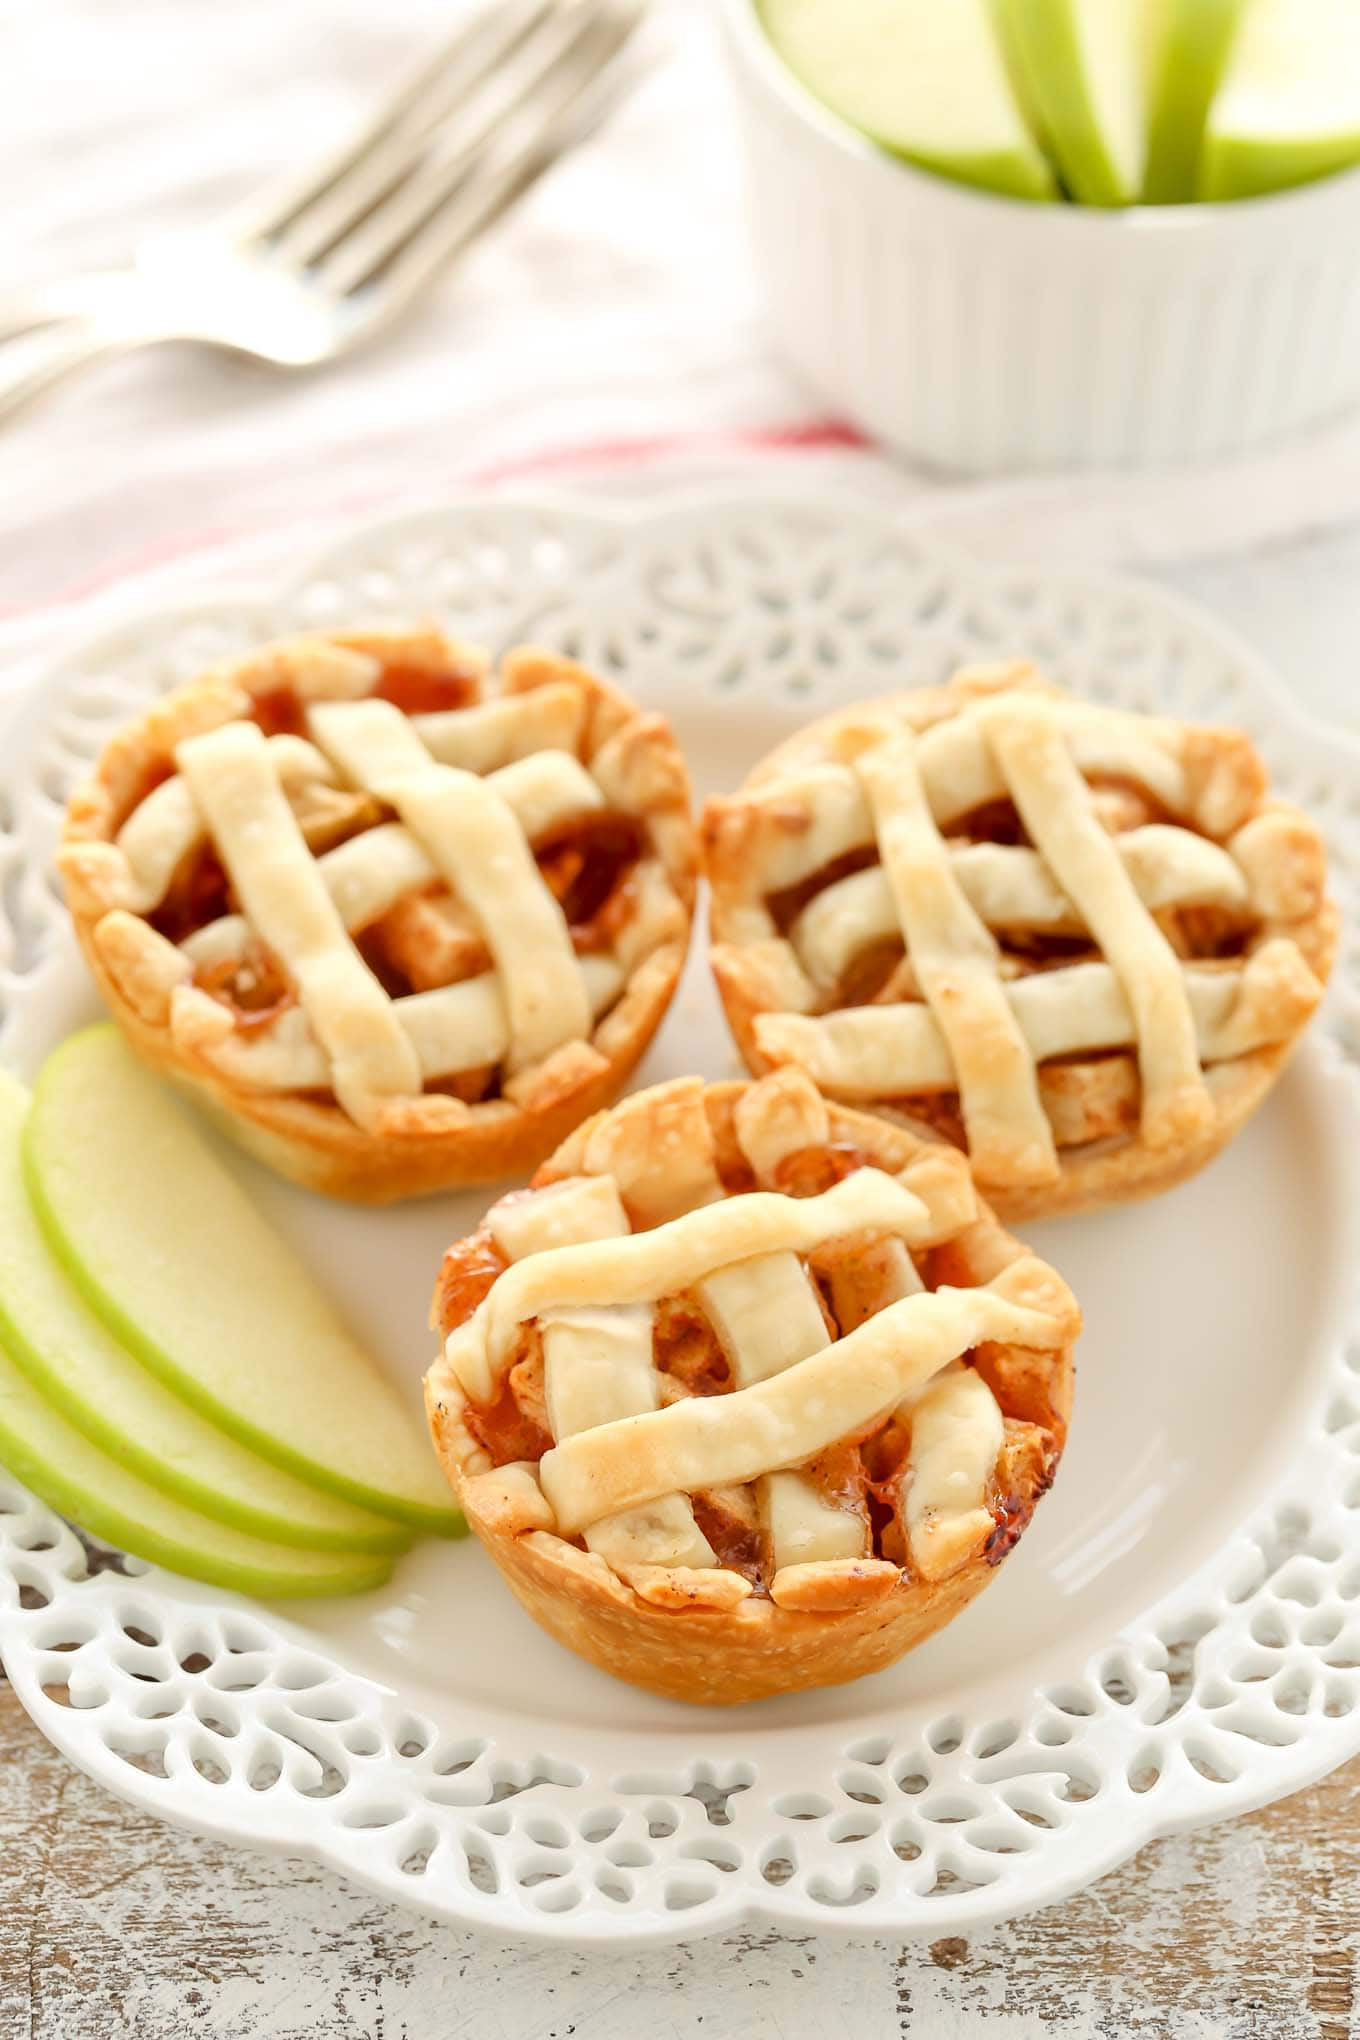 These Mini Apple Pies are easy to make and filled with a simple homemade apple pie filling. The perfect mini dessert for fall!